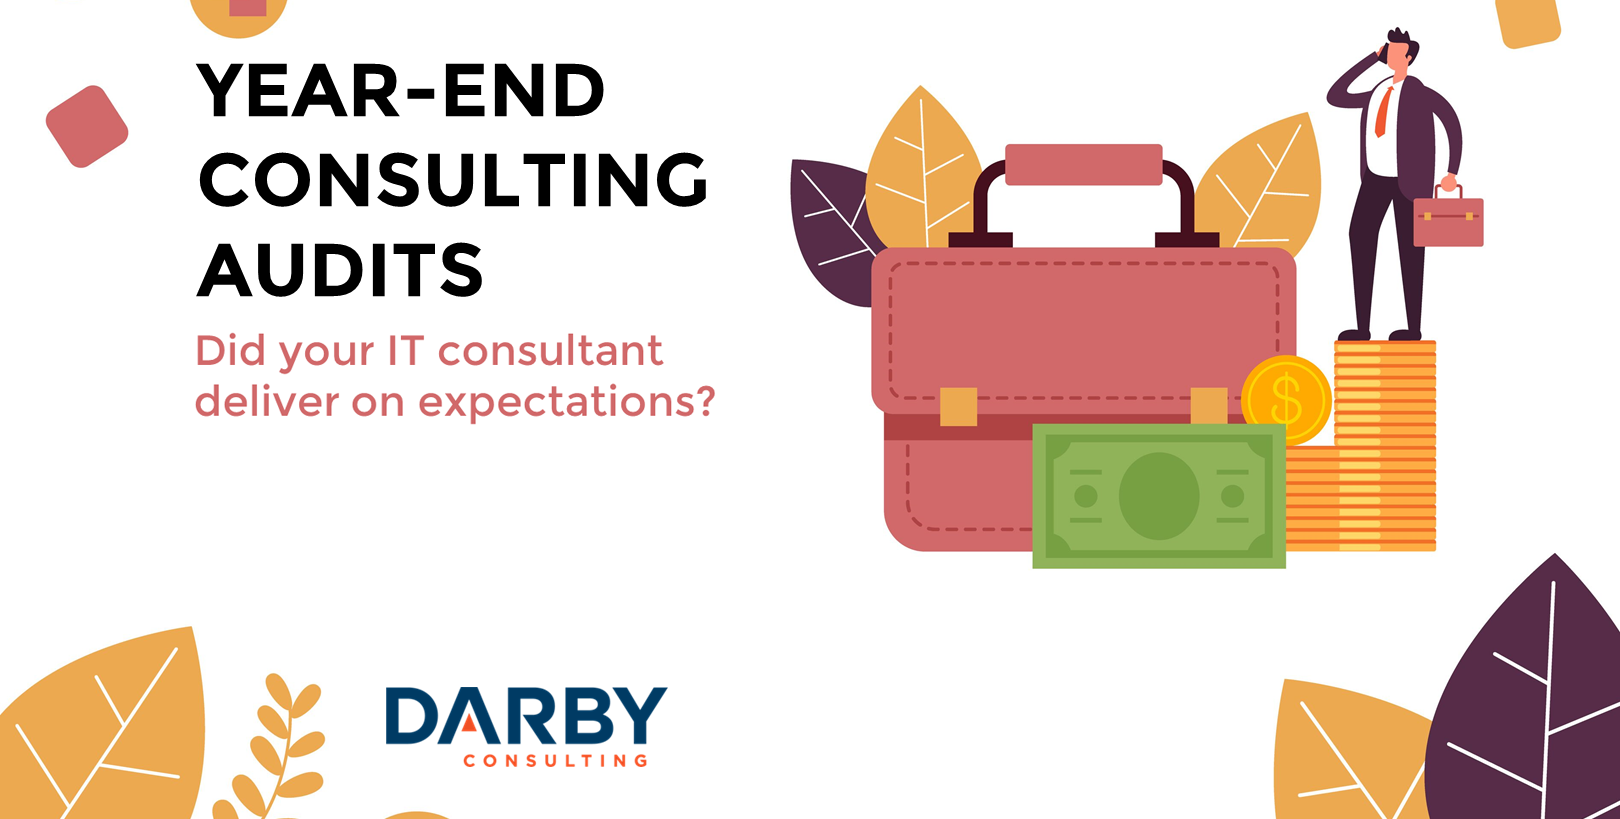 Year-End Consulting Audits